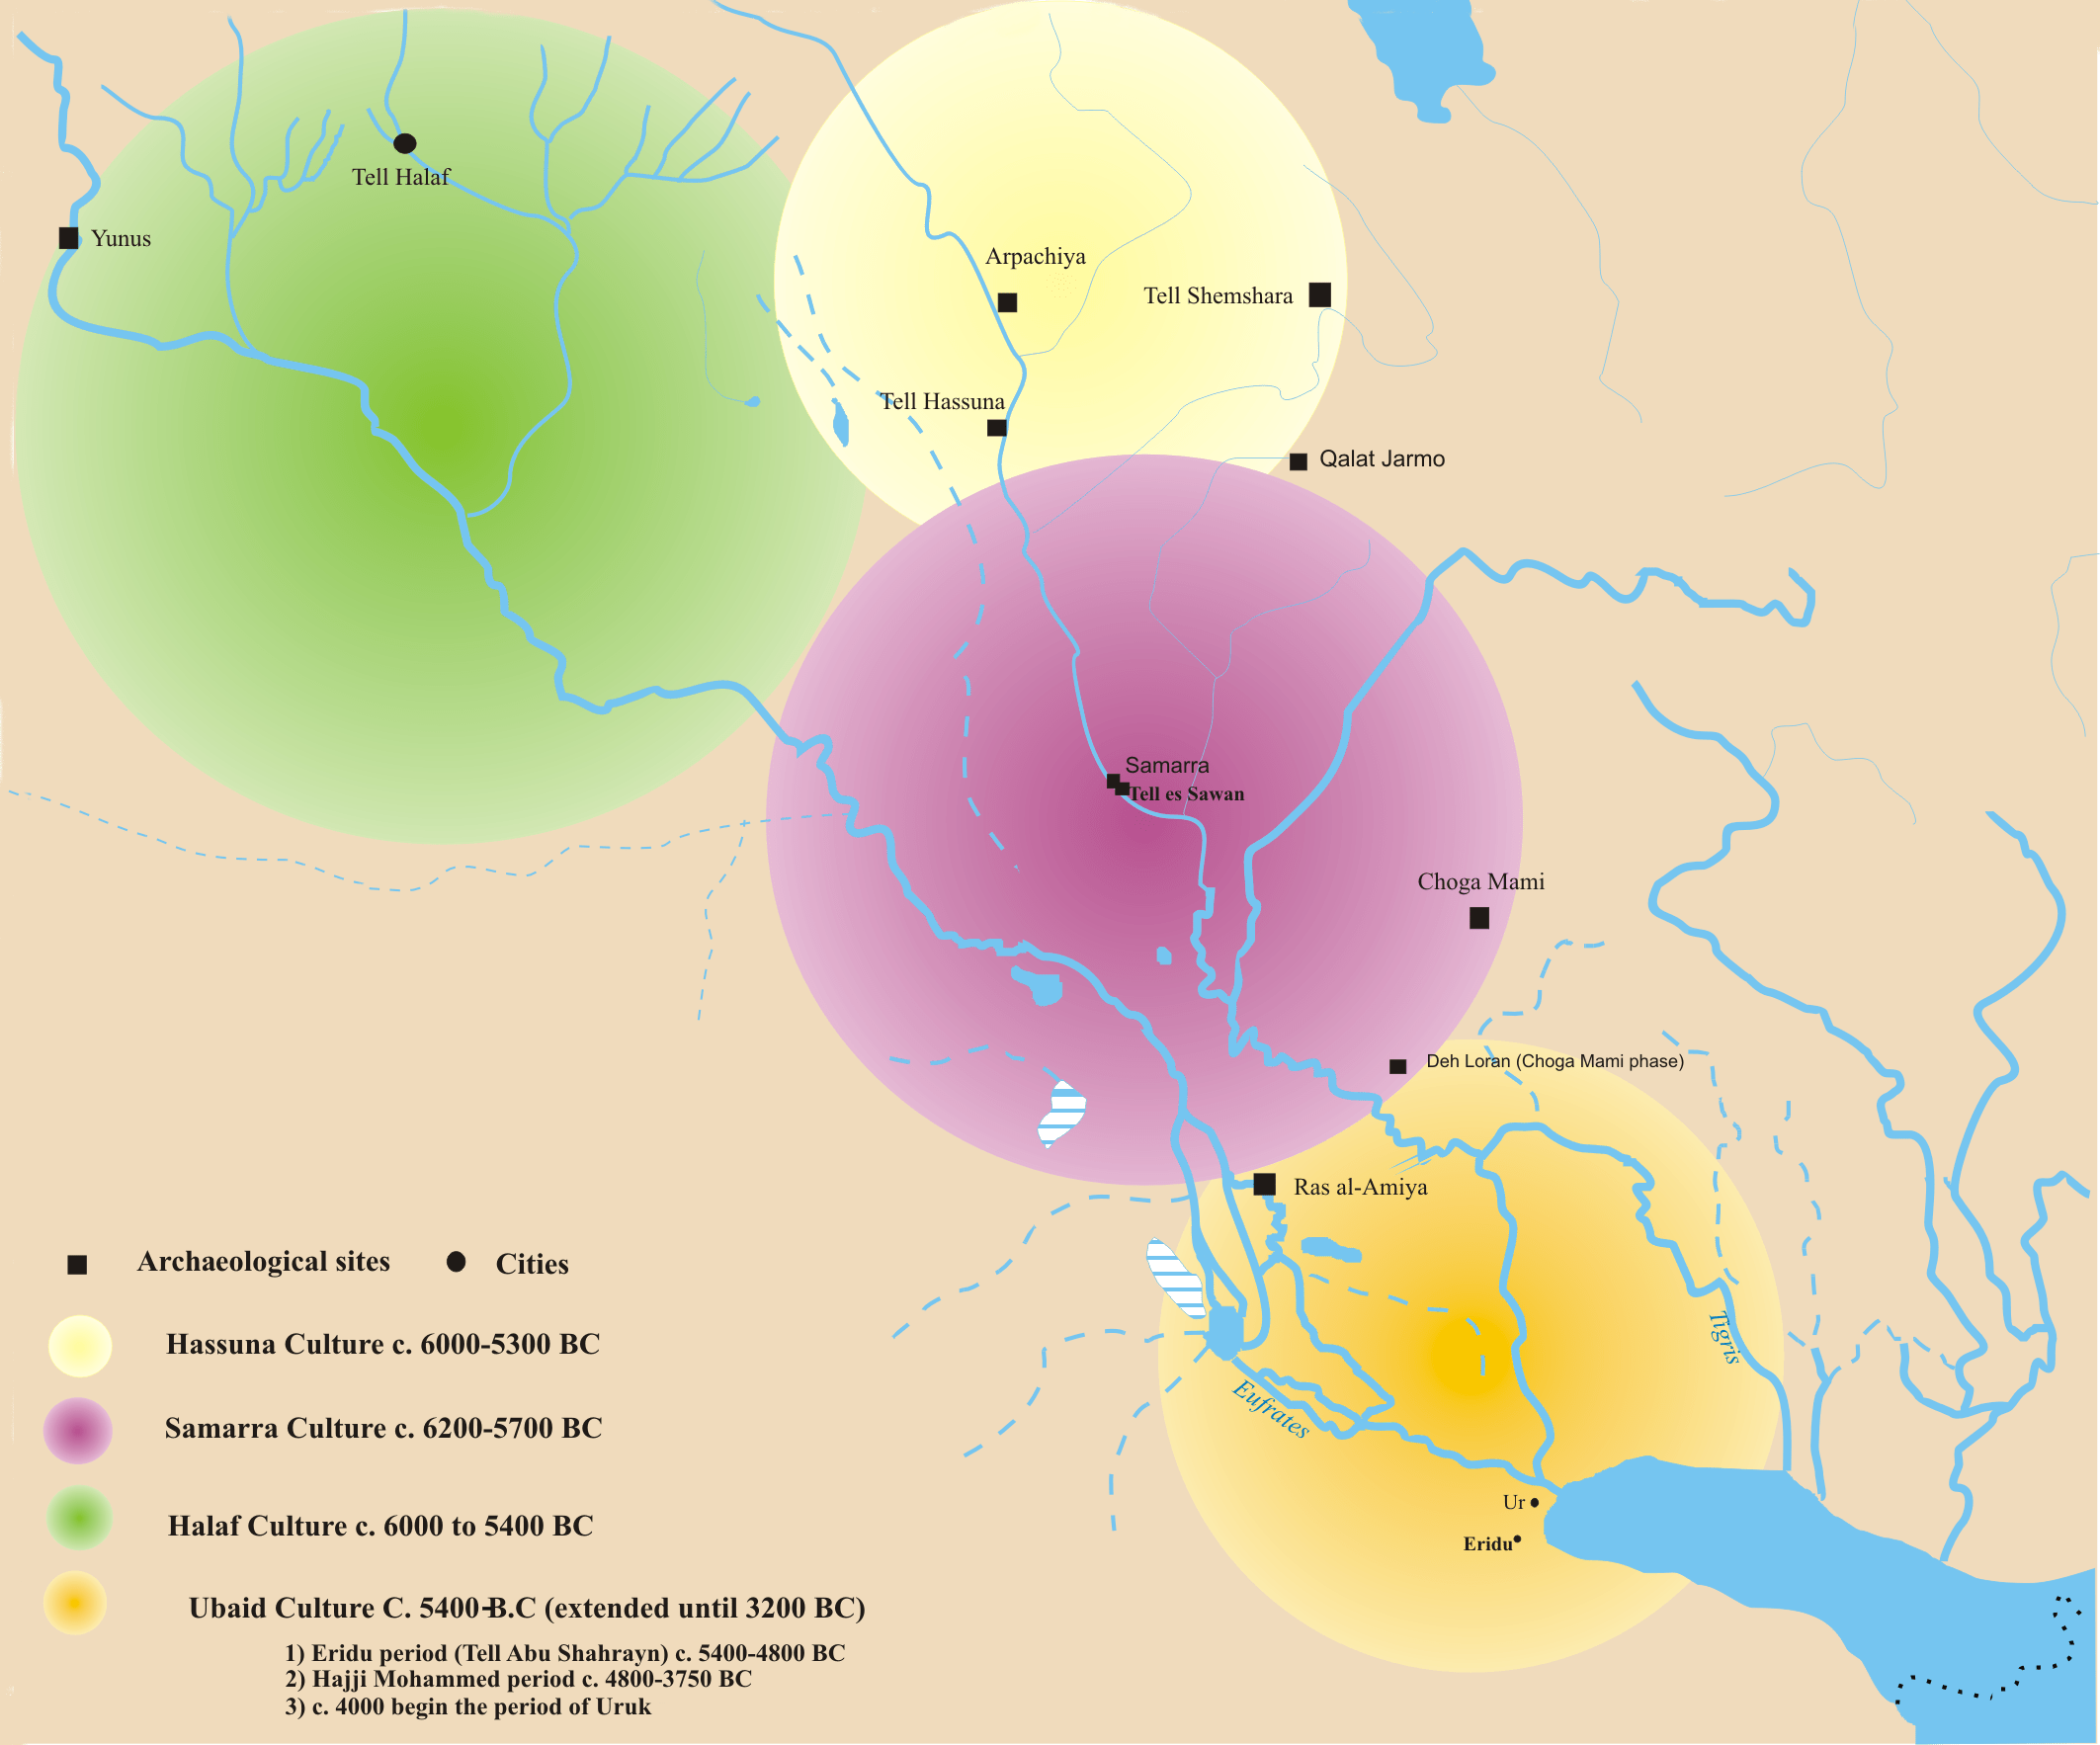 https://i2.wp.com/upload.wikimedia.org/wikipedia/commons/6/6b/Mesopotamia_6000-4500.png